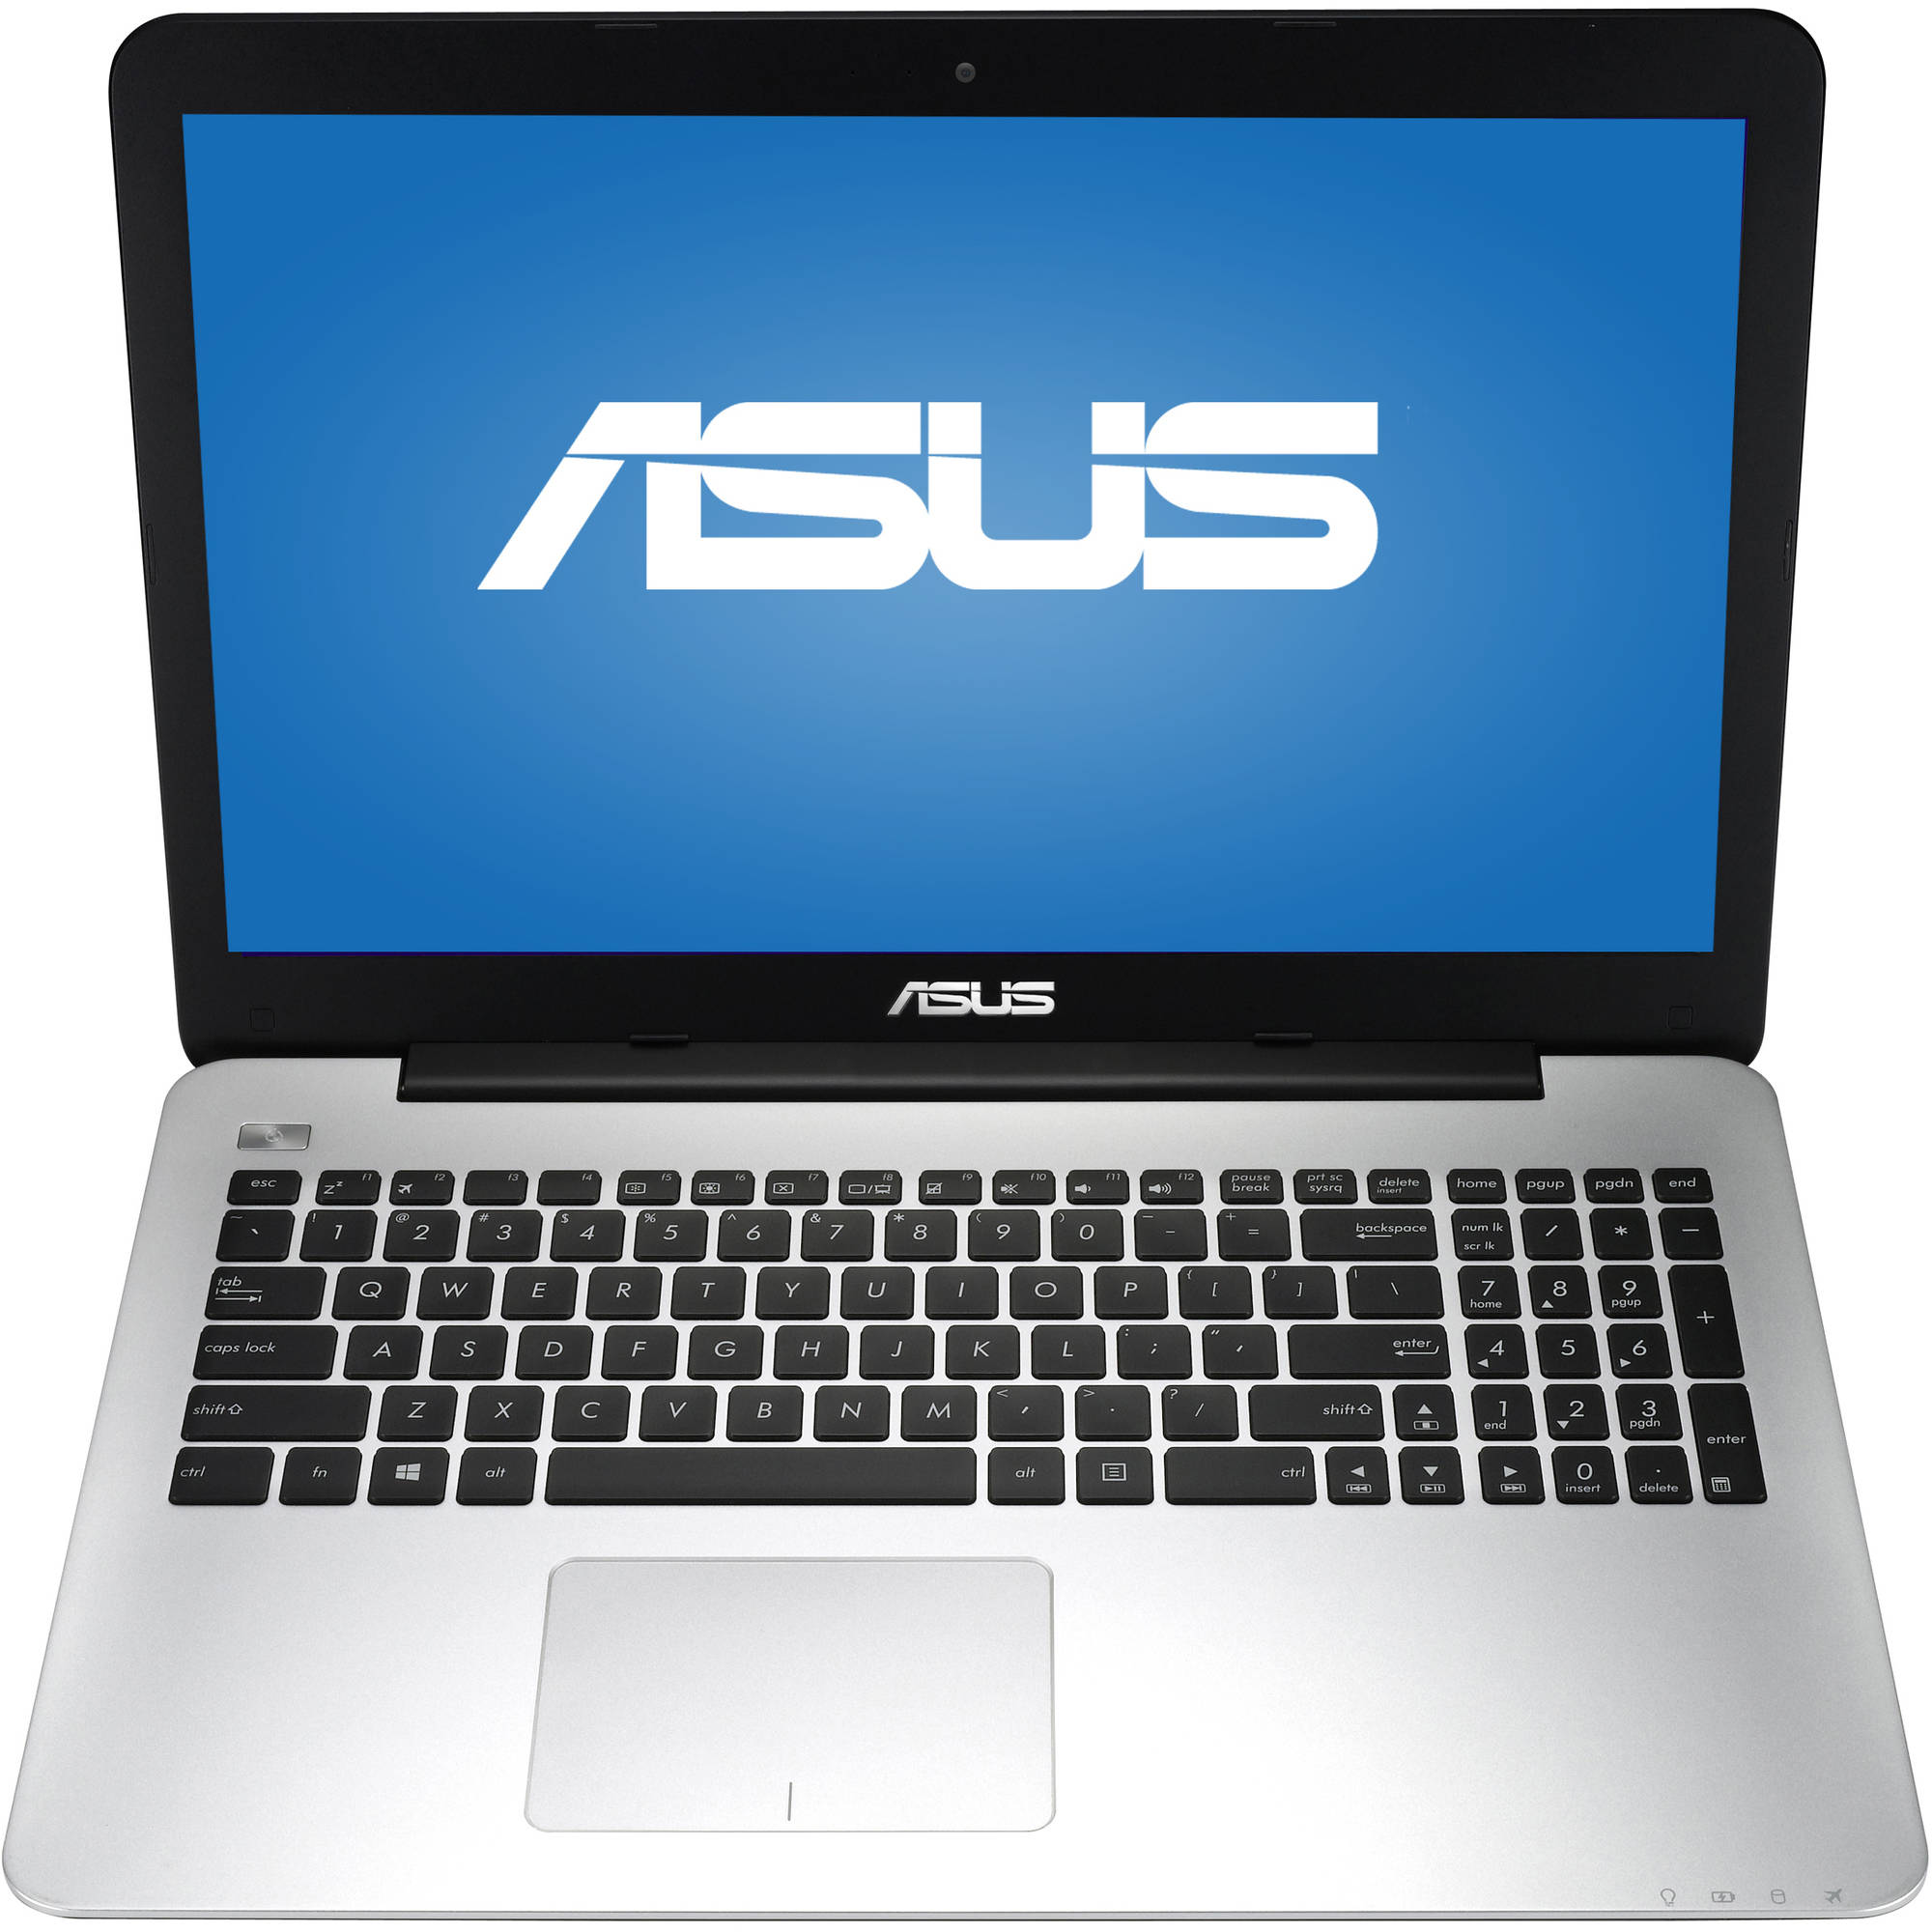 "ASUS Black 15.6"" X555LA Laptop PC with Intel Core i7-5500U Processor, 6GB Memory, 1TB Hard Drive and Windows 10"